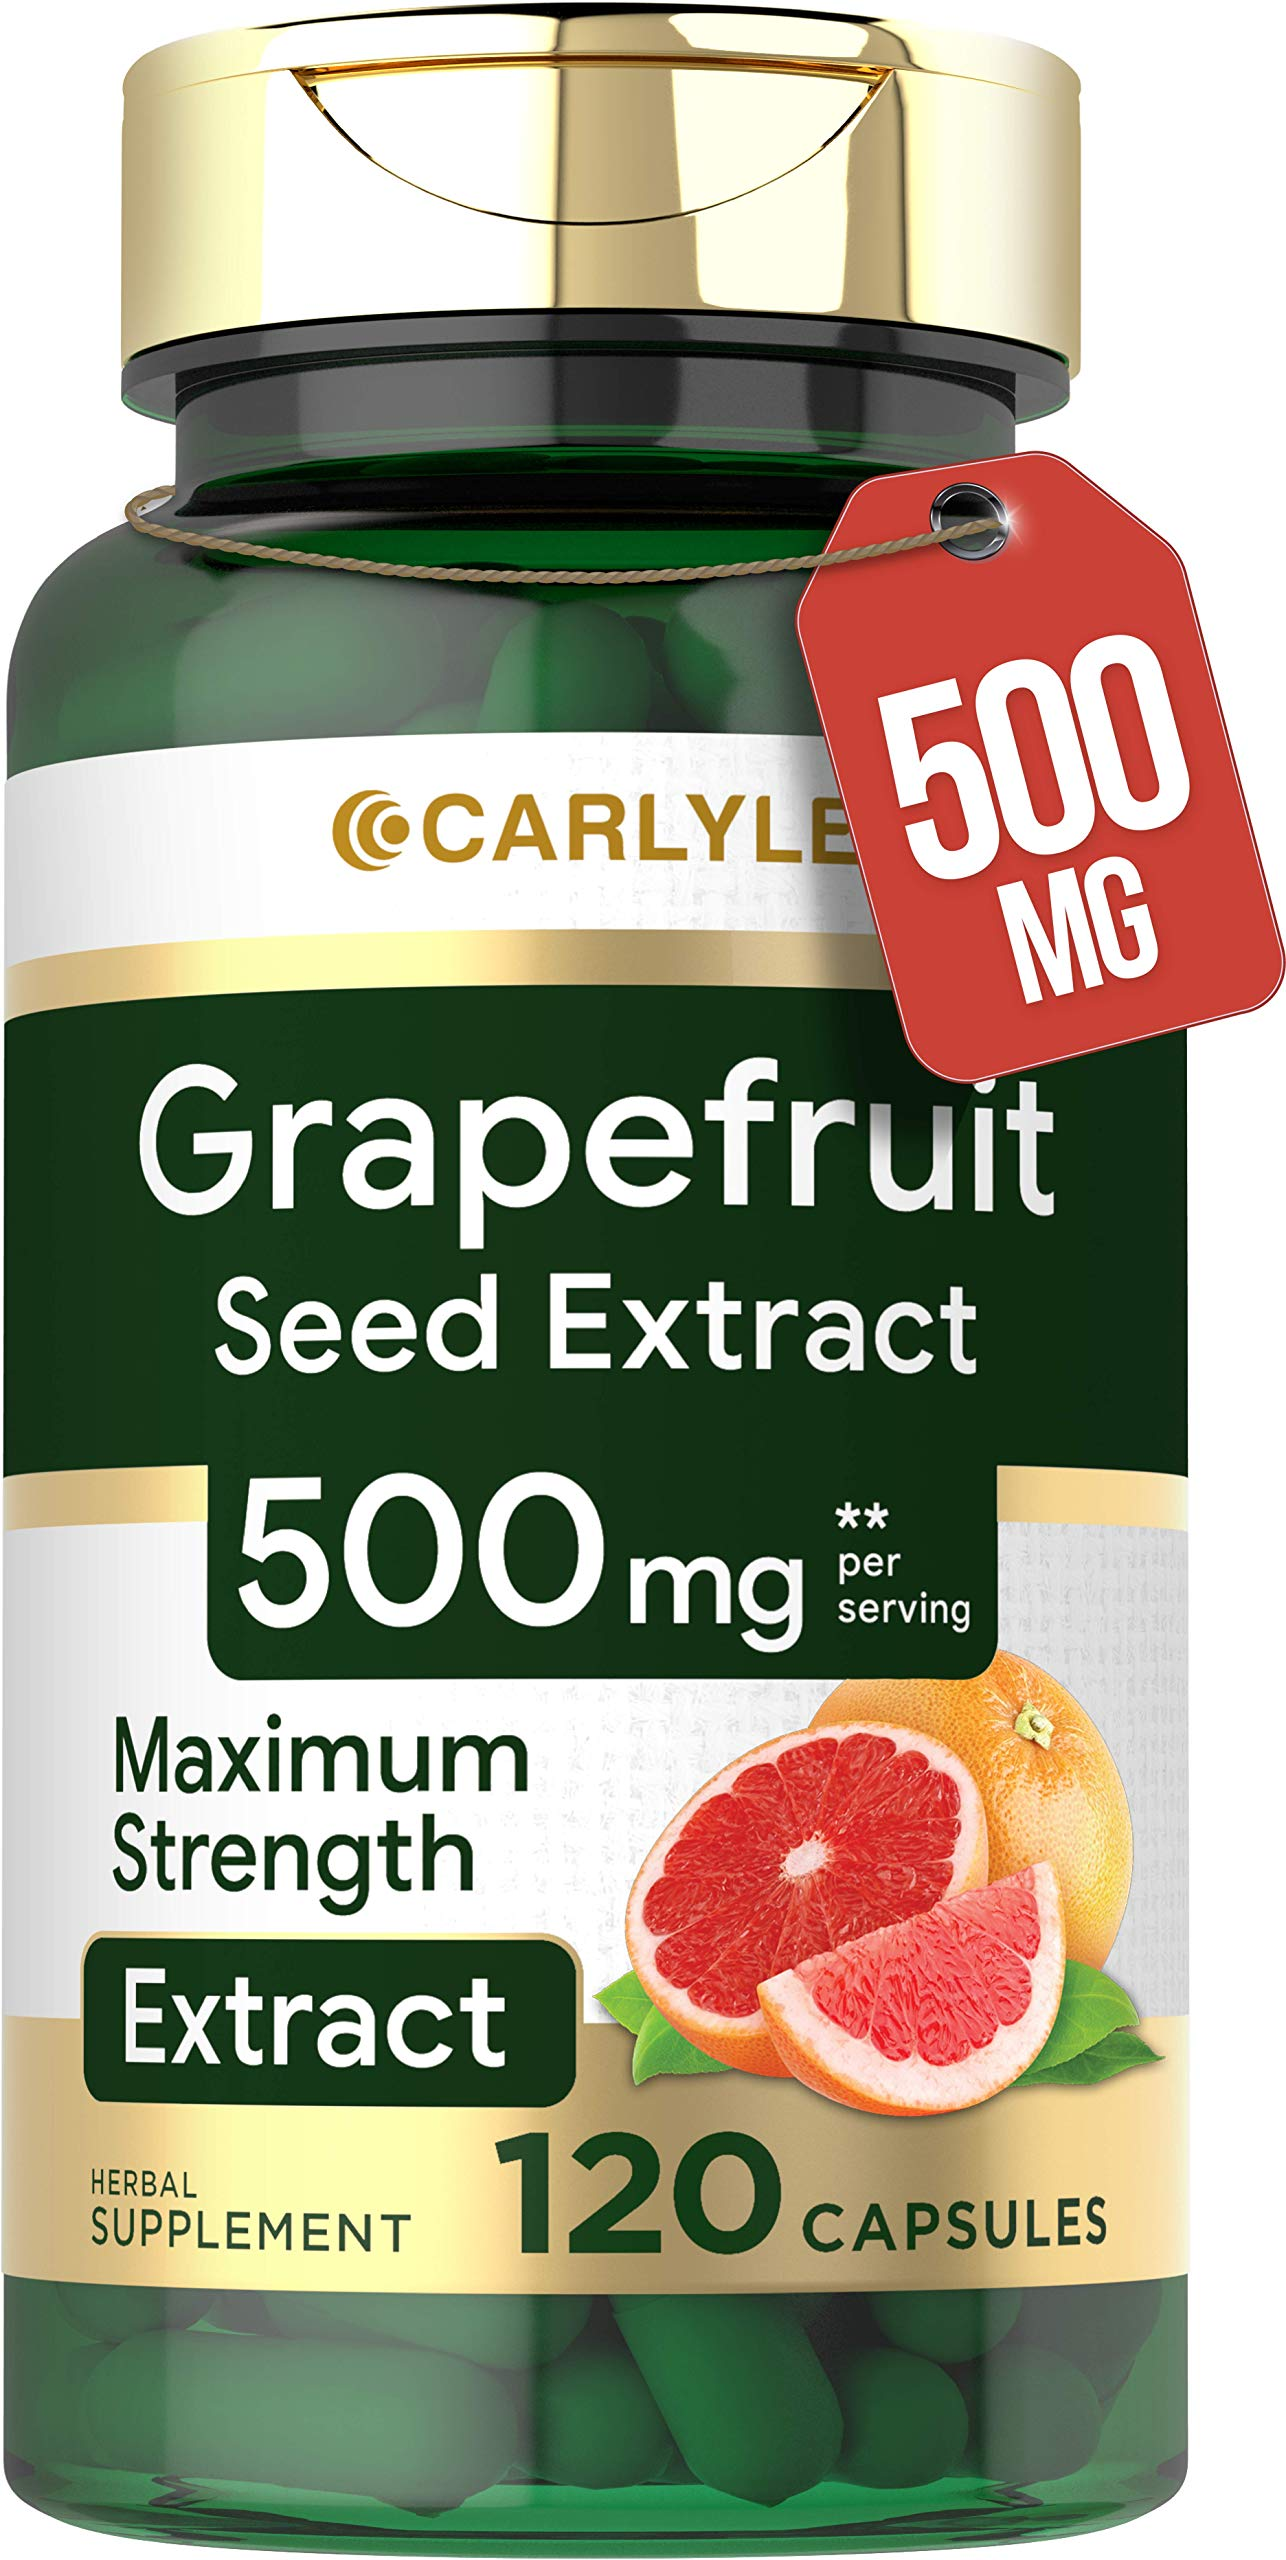 Grapefruit Seed Extract | 500 mg 120 Capsules | Maximum Strength | Non-GMO, Gluten Free | Carlyle